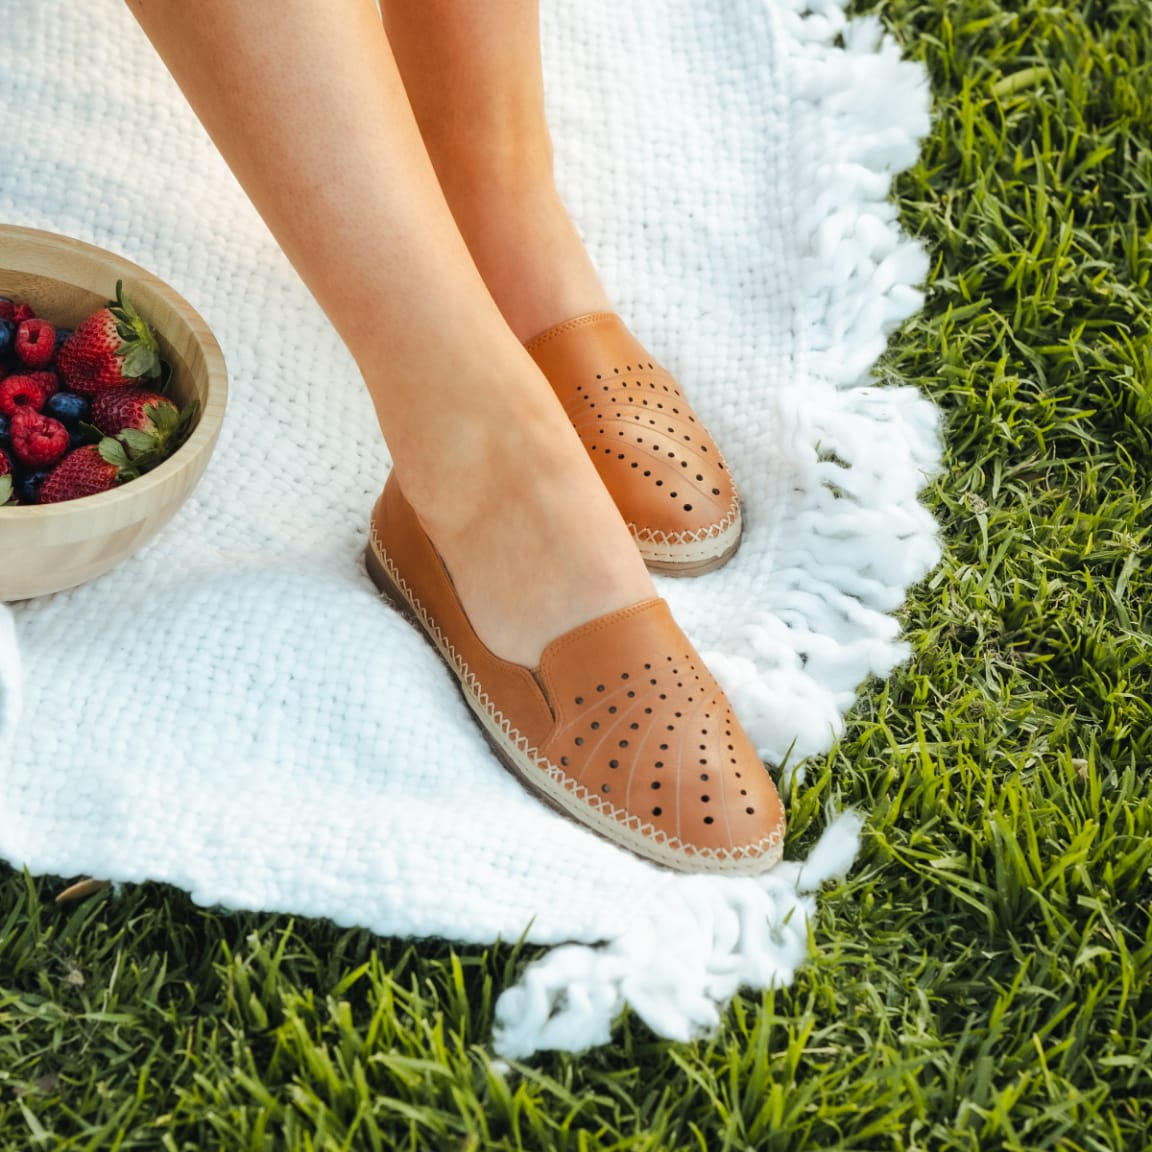 Flats to keep you stylish and comfortable all year long